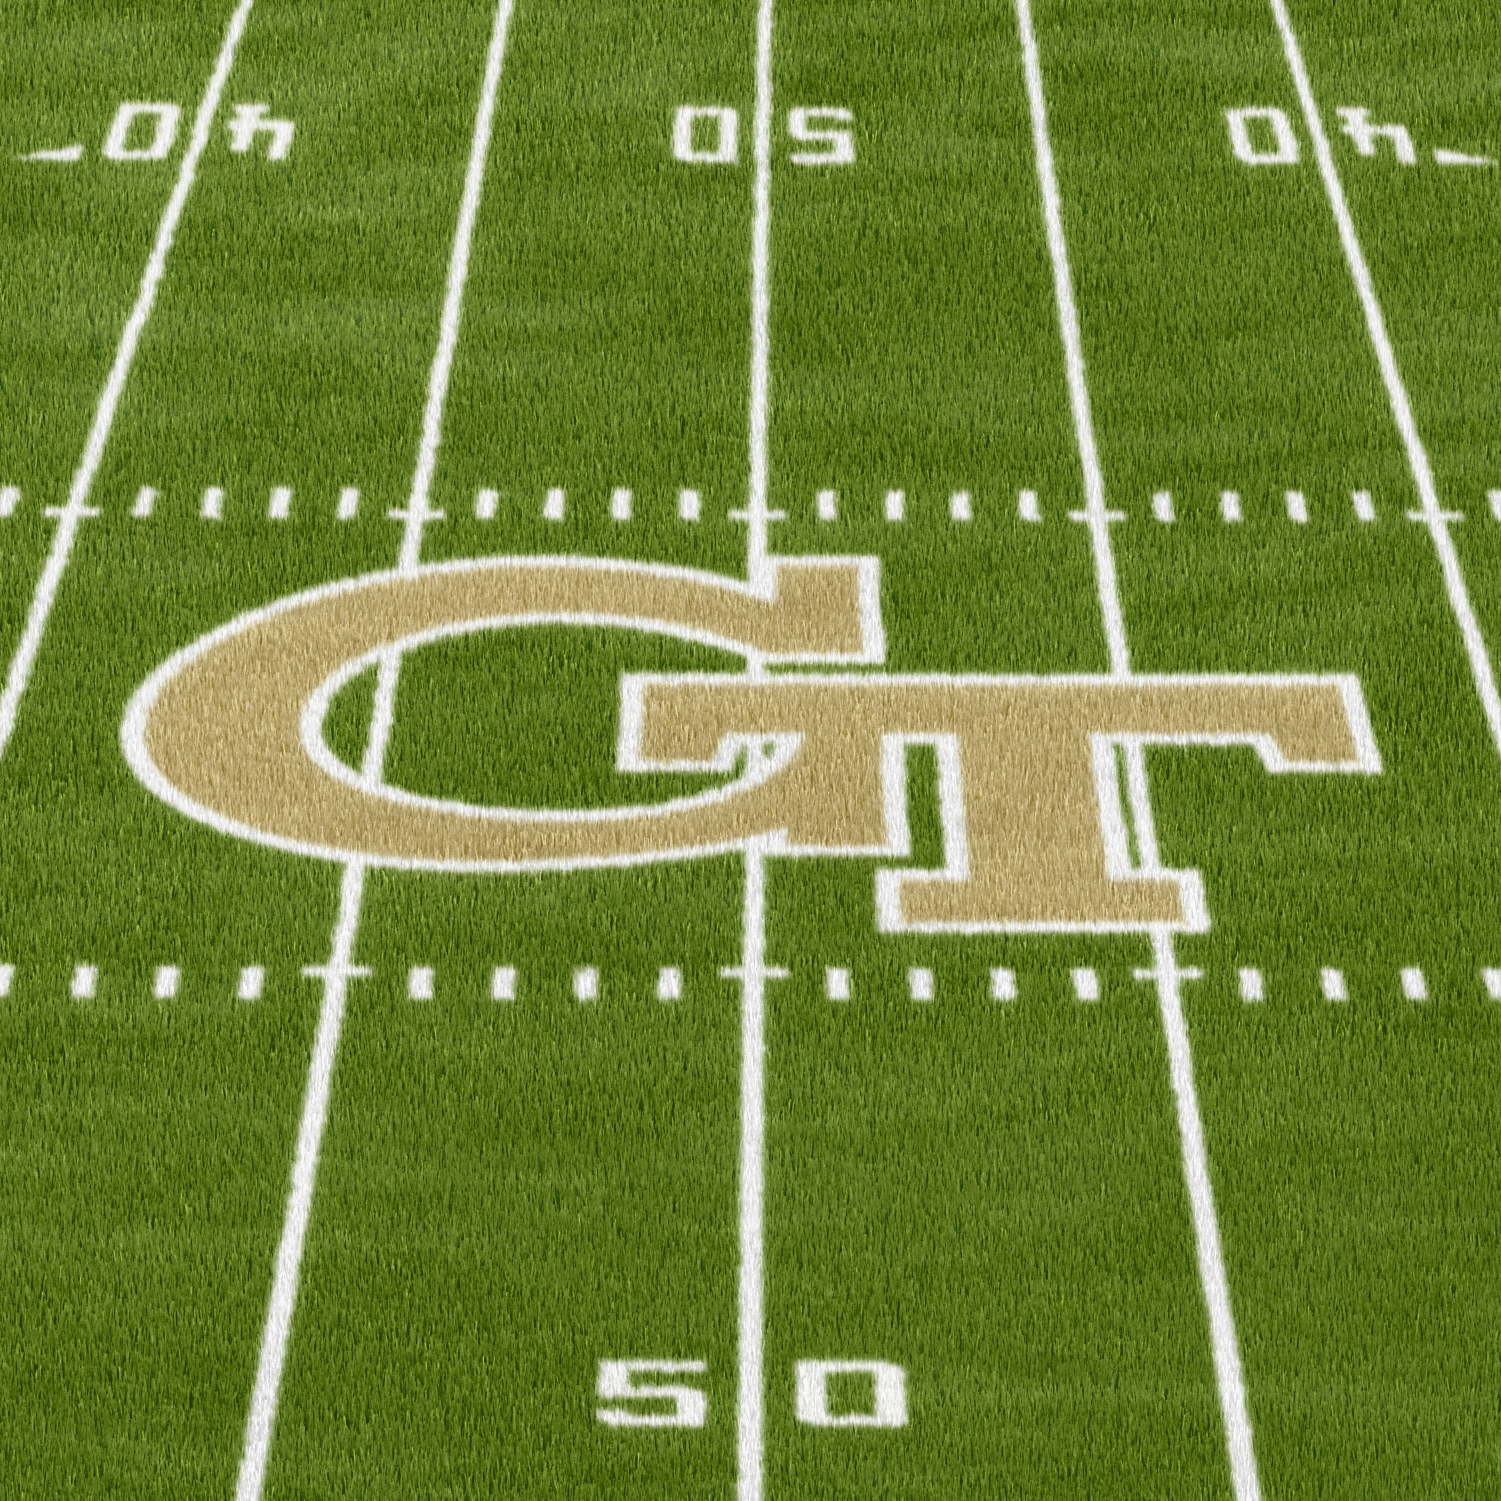 I Really Designed the Georgia Tech Football Field